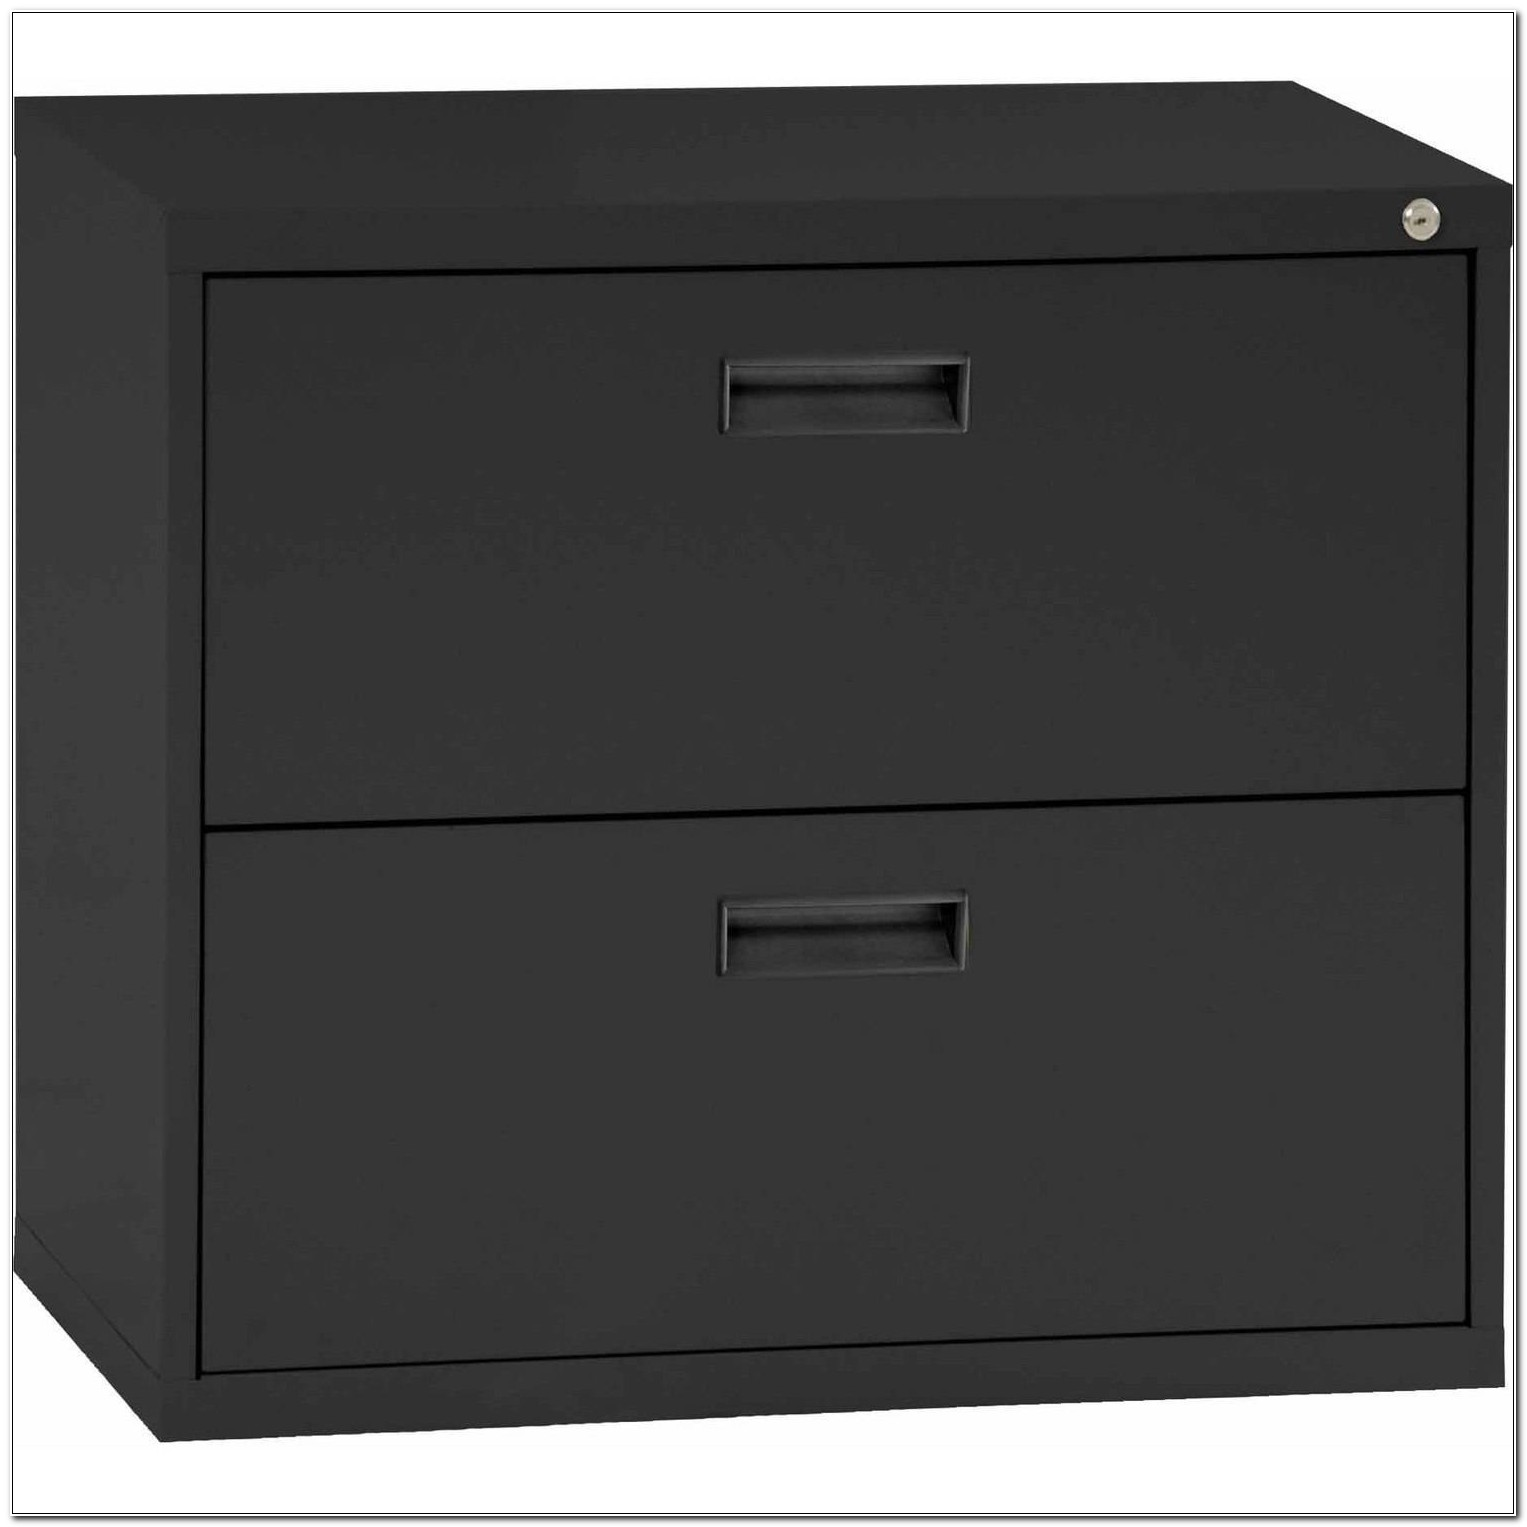 2 Drawer Lateral Filing Cabinet Black